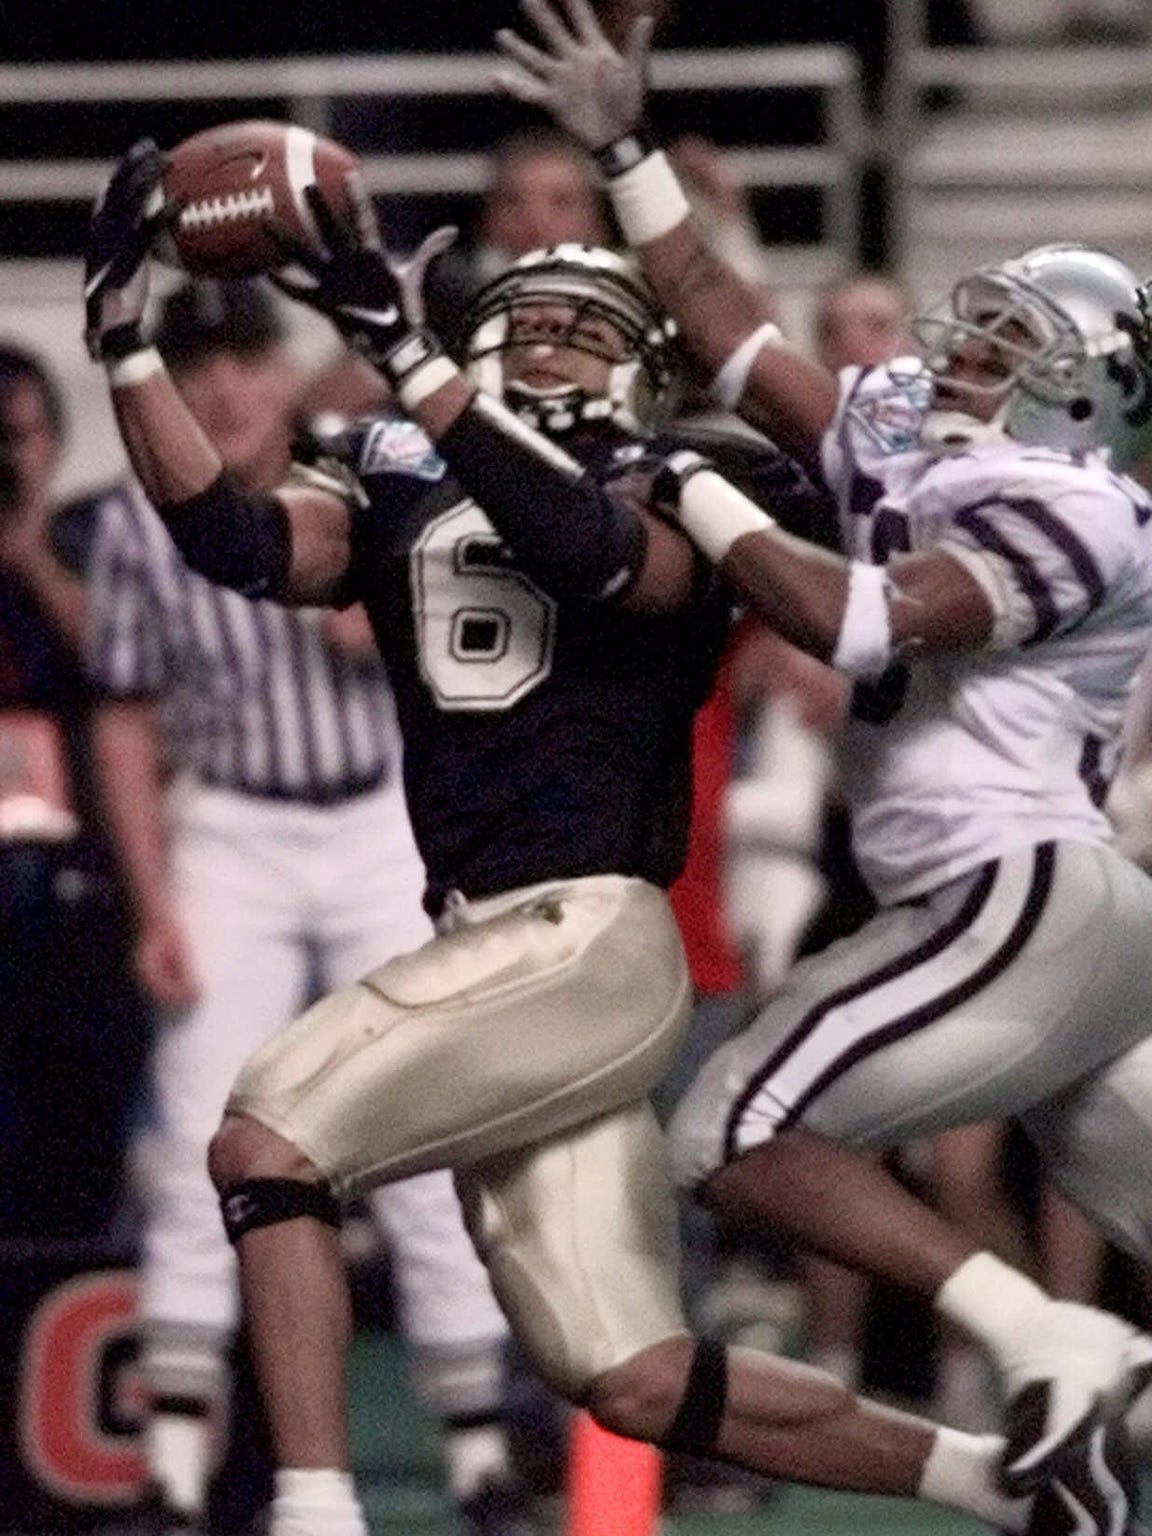 Purdue receiver Isaac Jones (6) pulls in the winning touchdown as Kansas State's Dyshod Carter (35) defends on the play during the final moments of the Alamo Bowl in San Antonio, Texas, Dec. 29, 1998. Purdue won 37-34.